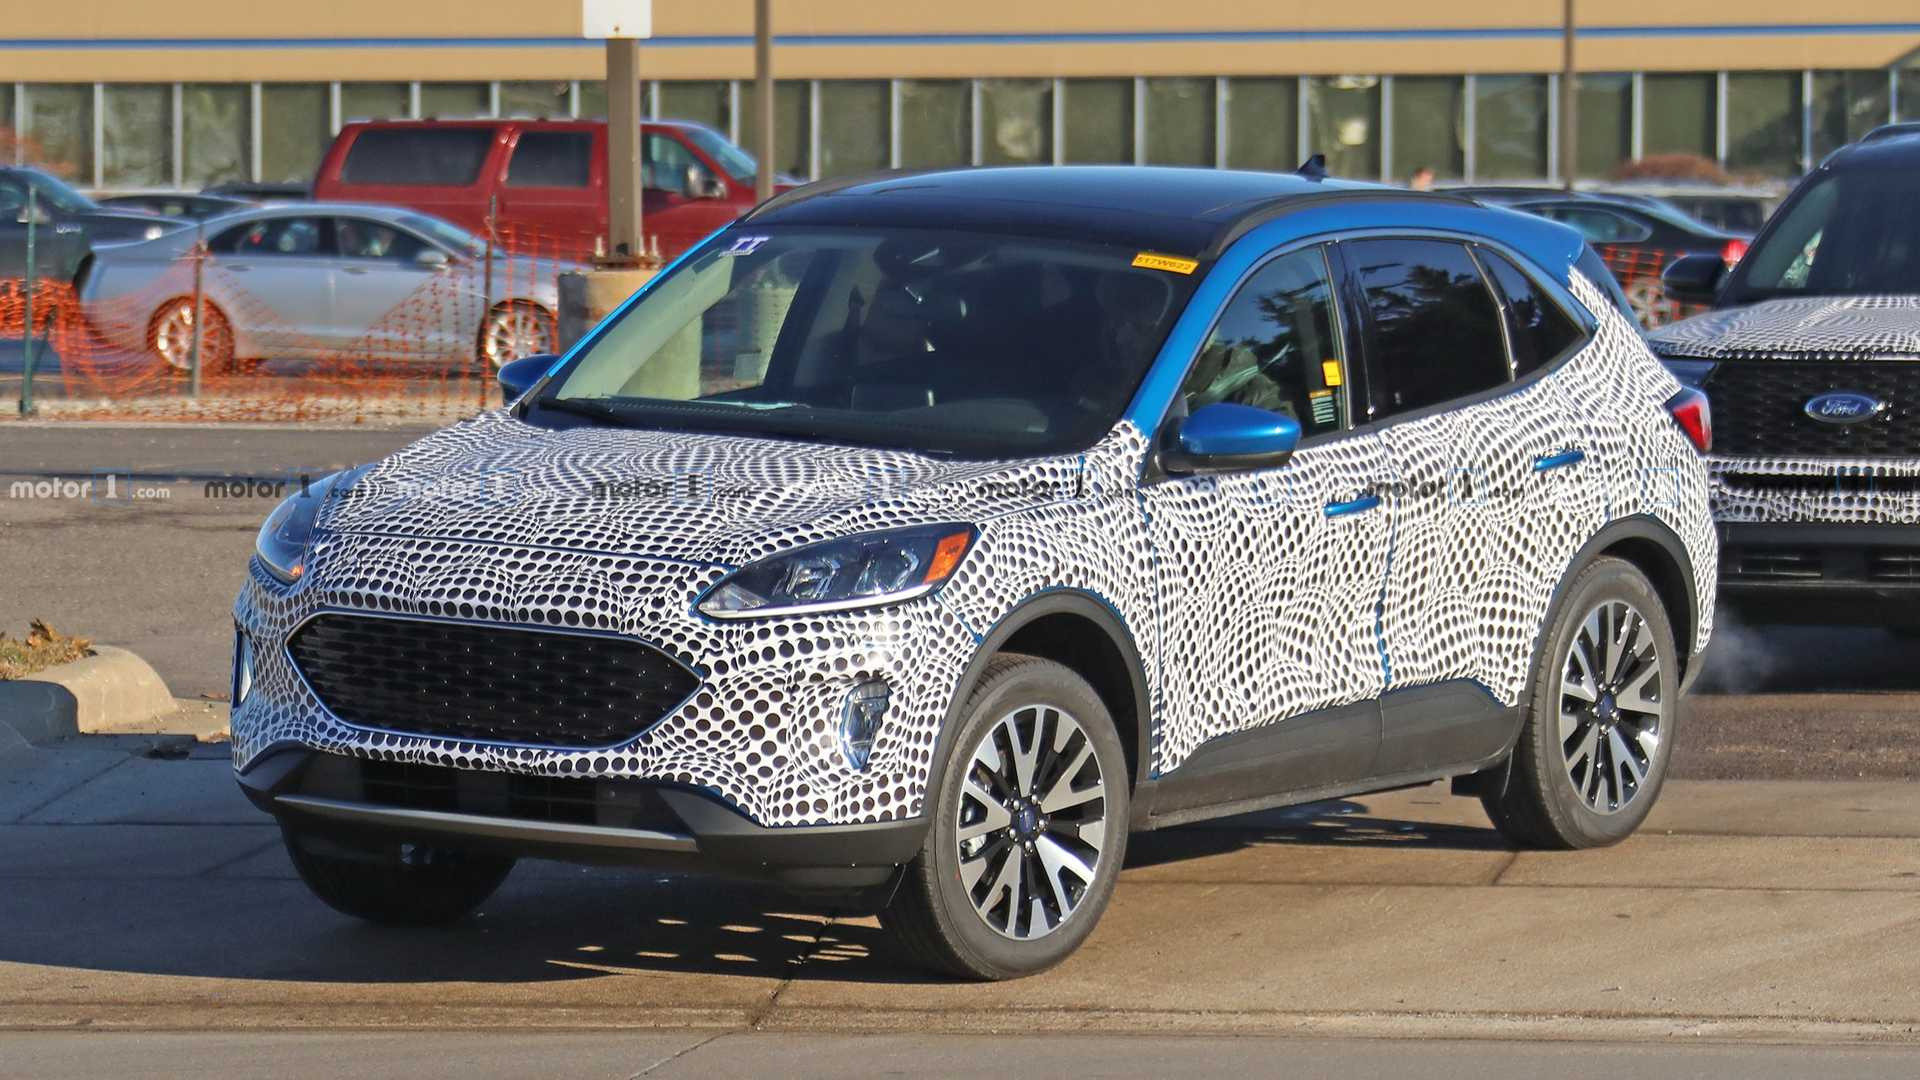 72 Gallery of 2020 Ford Escape Images with 2020 Ford Escape